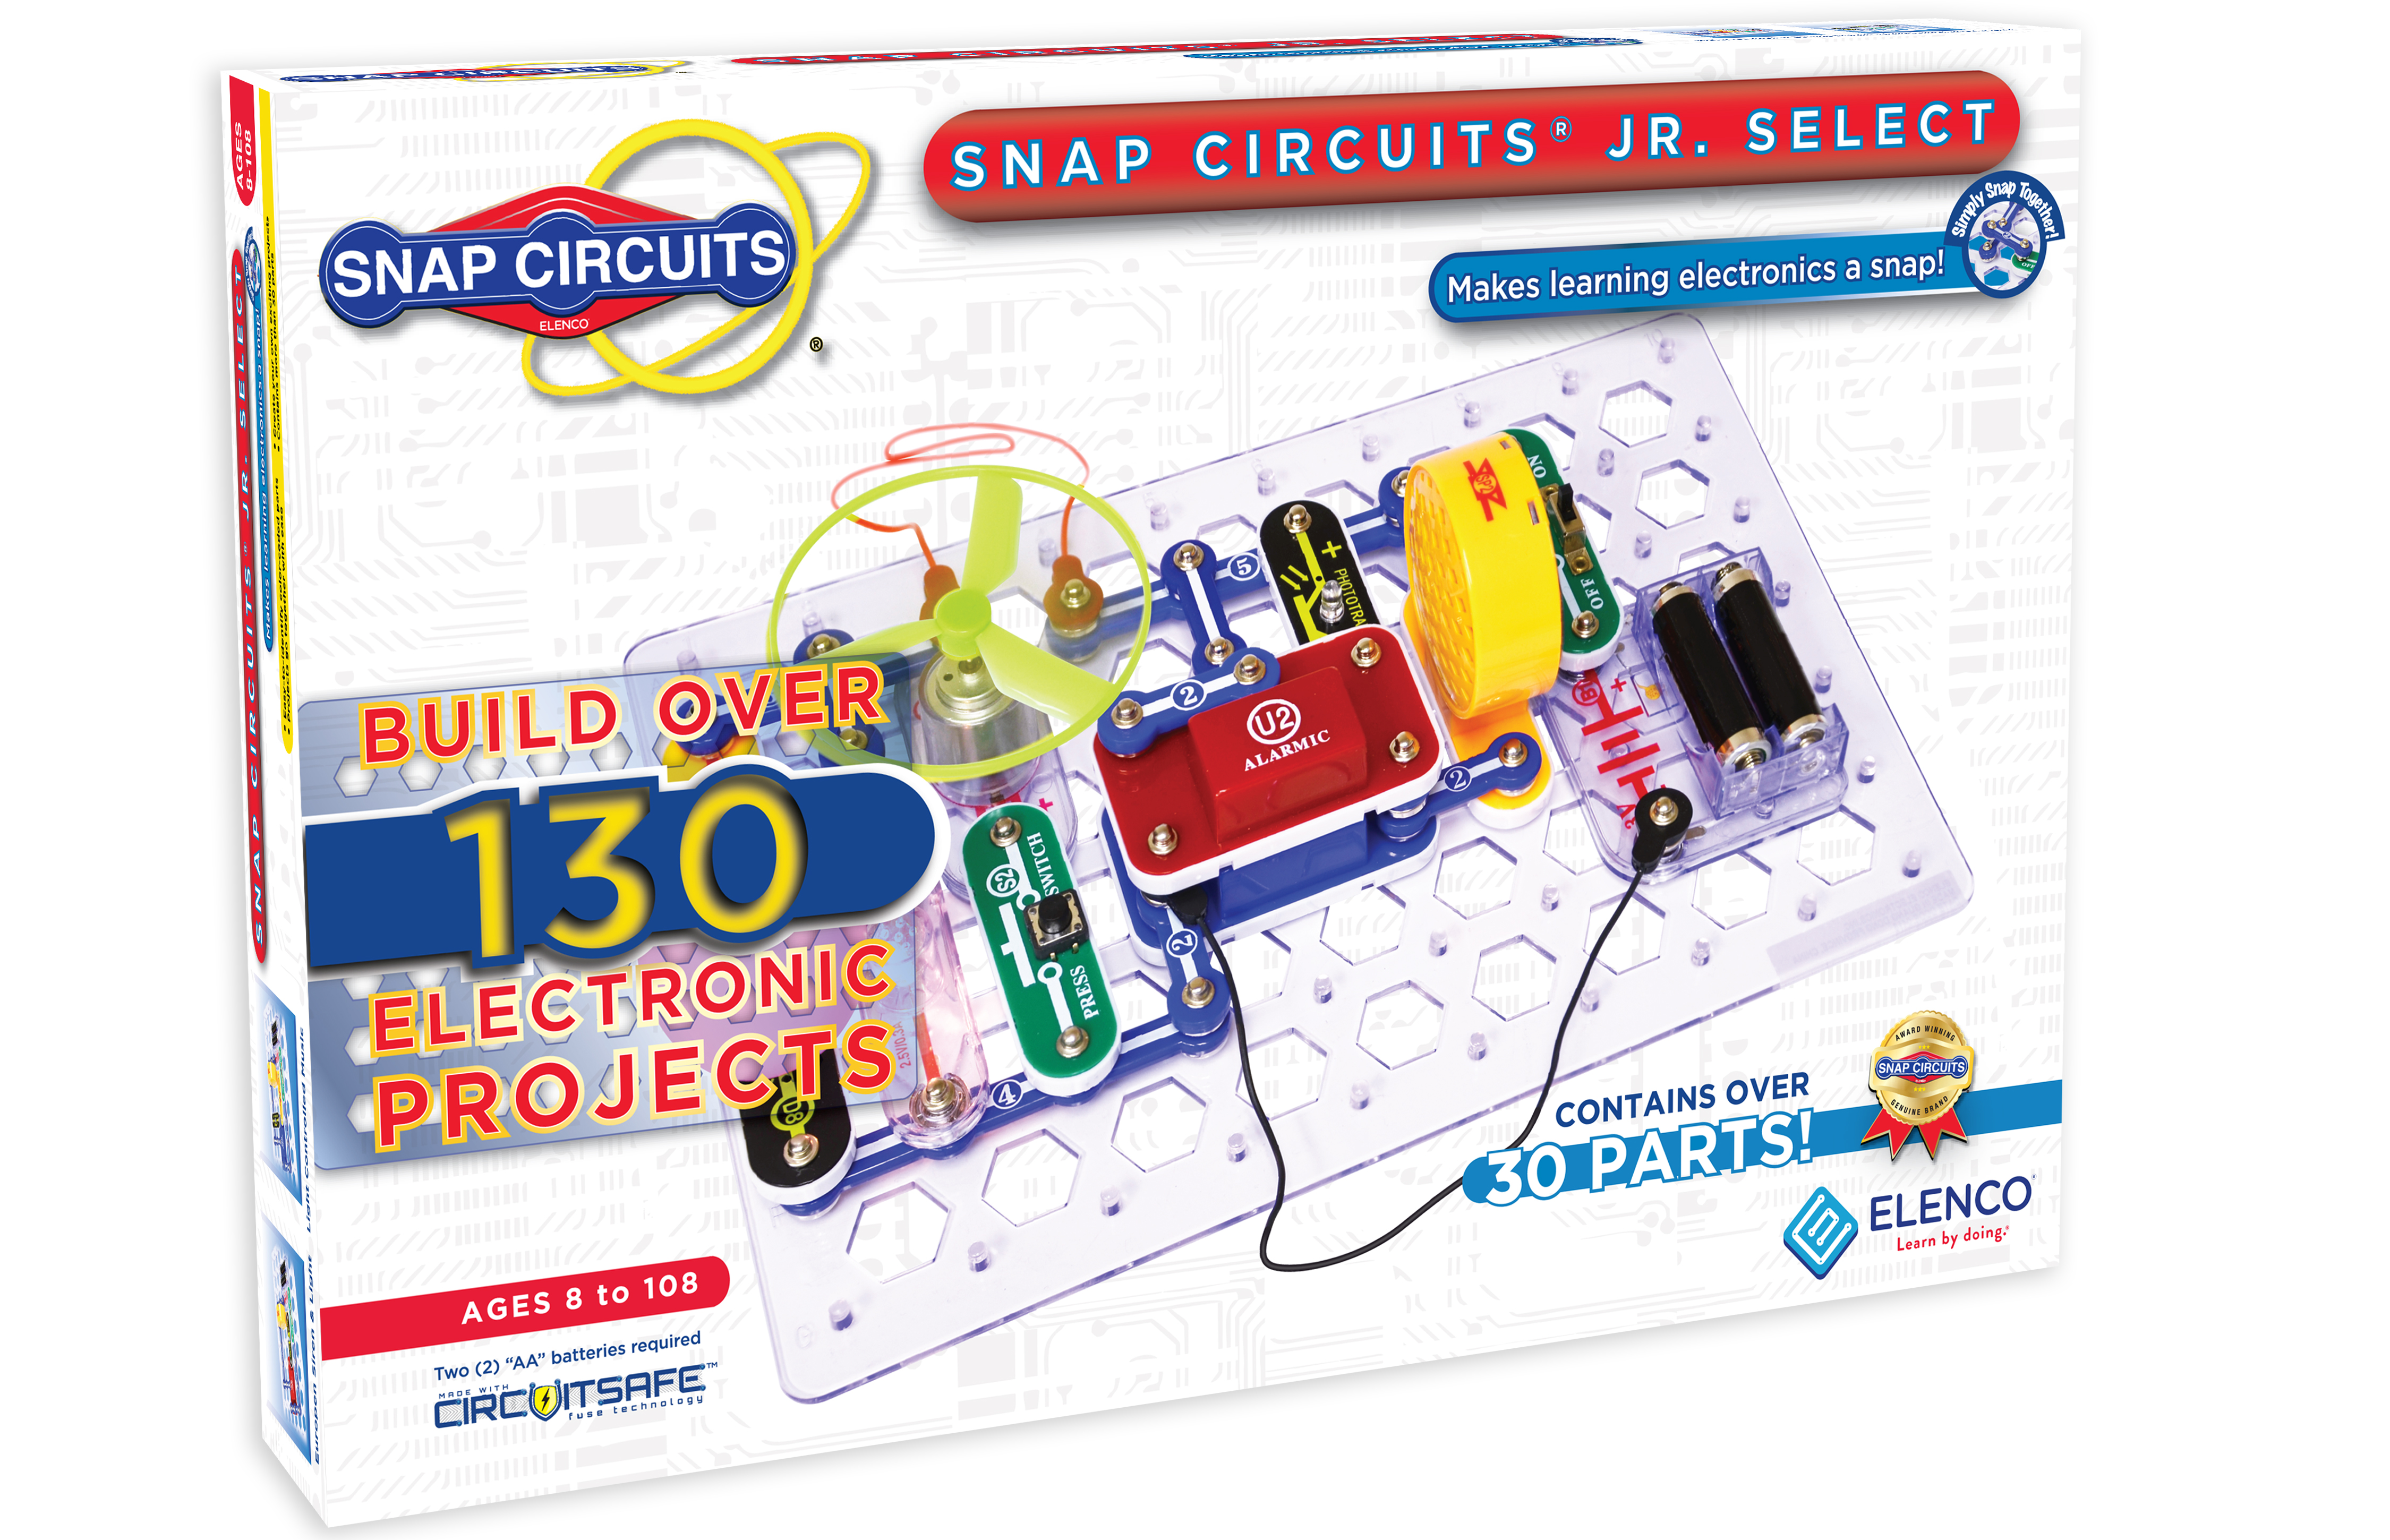 Stupendous Snap Circuits Elenco Electronics Wiring Cloud Dulfrecoveryedborg